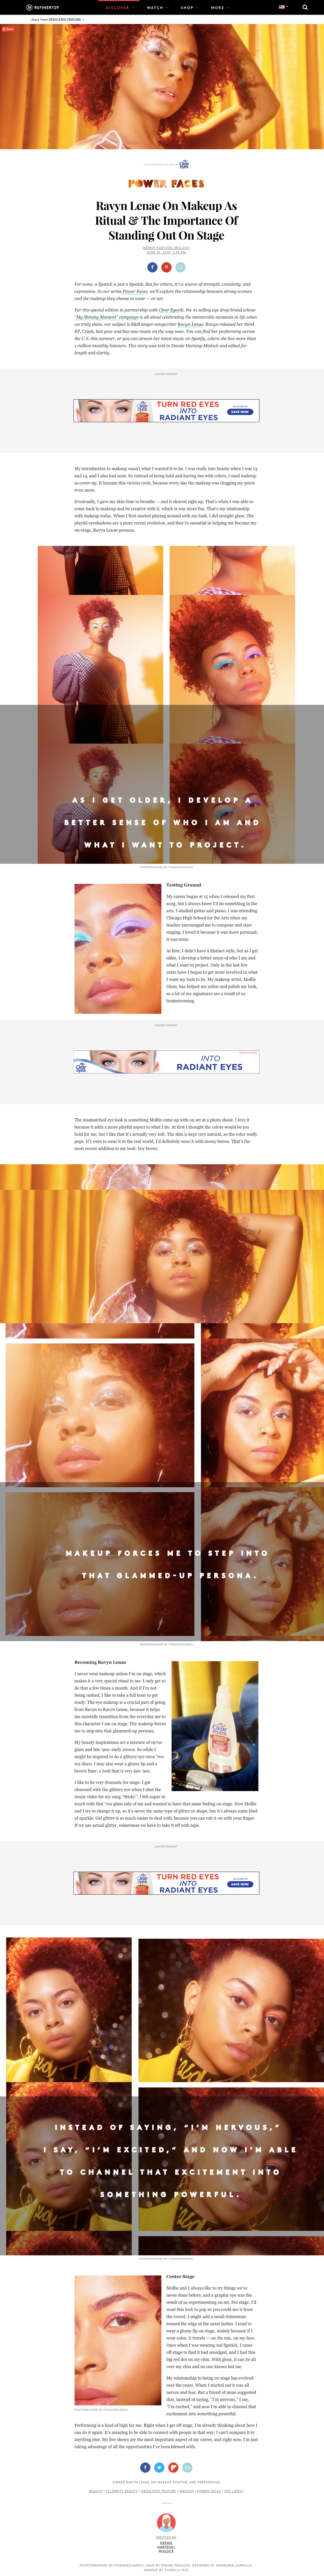 R29 Singer Ravyn Lenae On Makeup Routine And Performing - www.refinery29.com.png